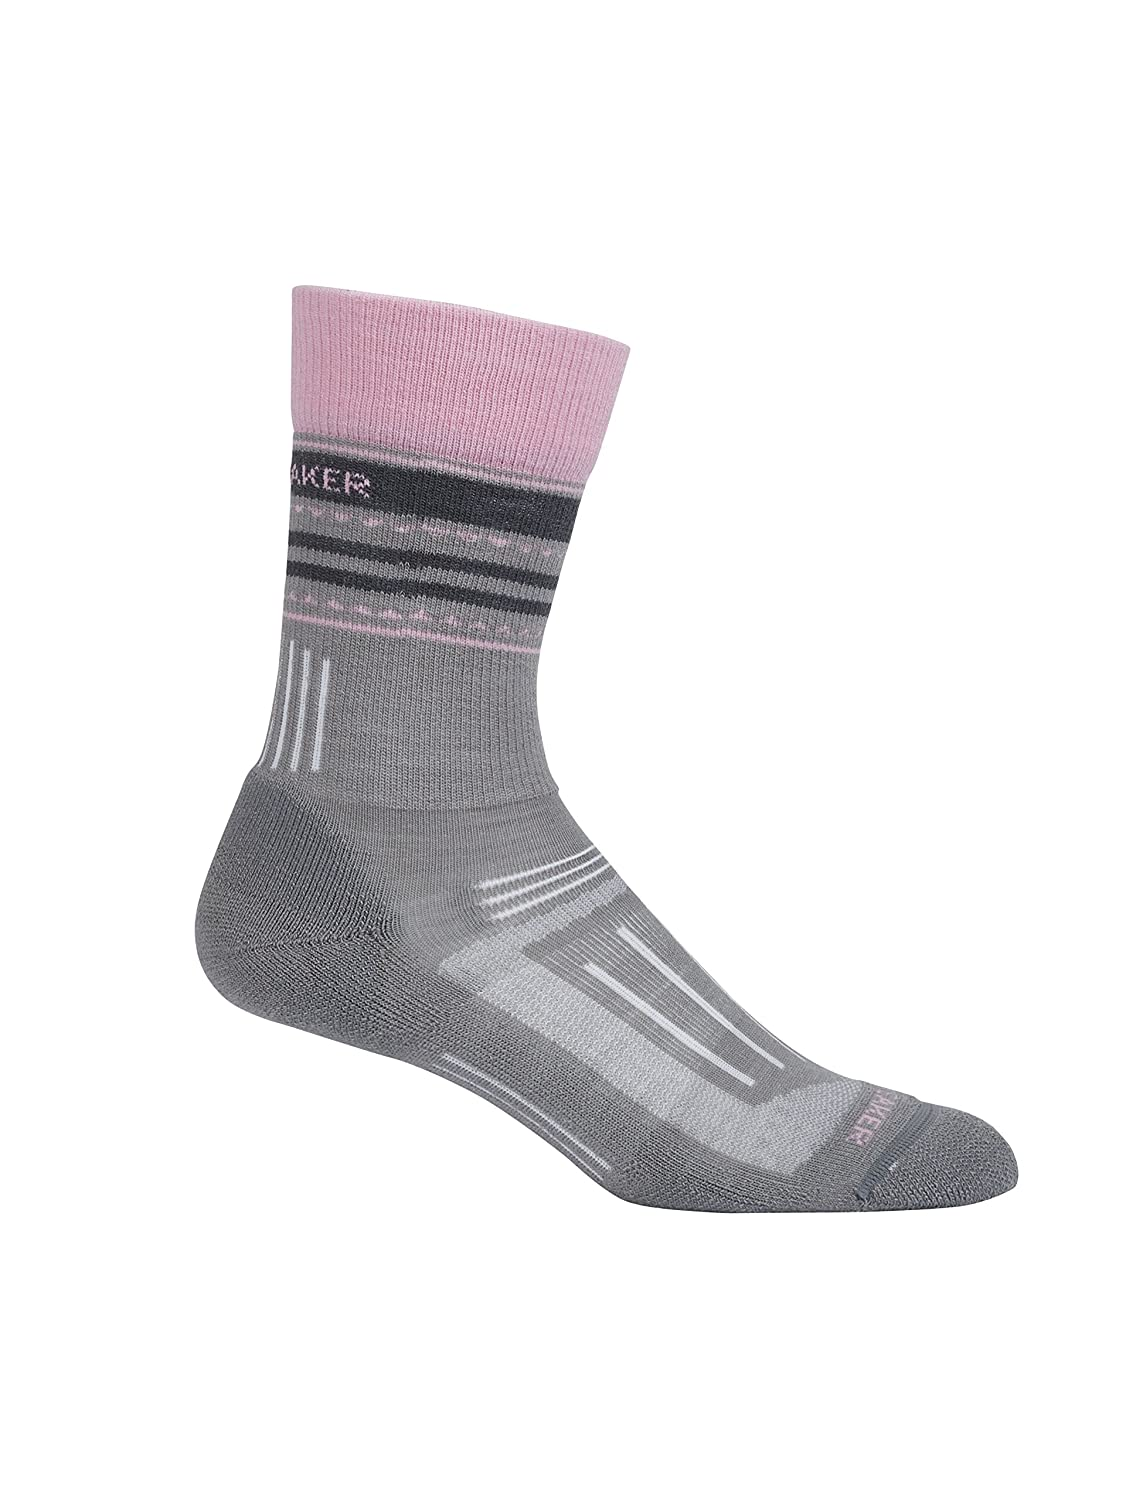 Icebreaker Merino Women's Hike Light Cushion Crew Socks Icebreaker USA